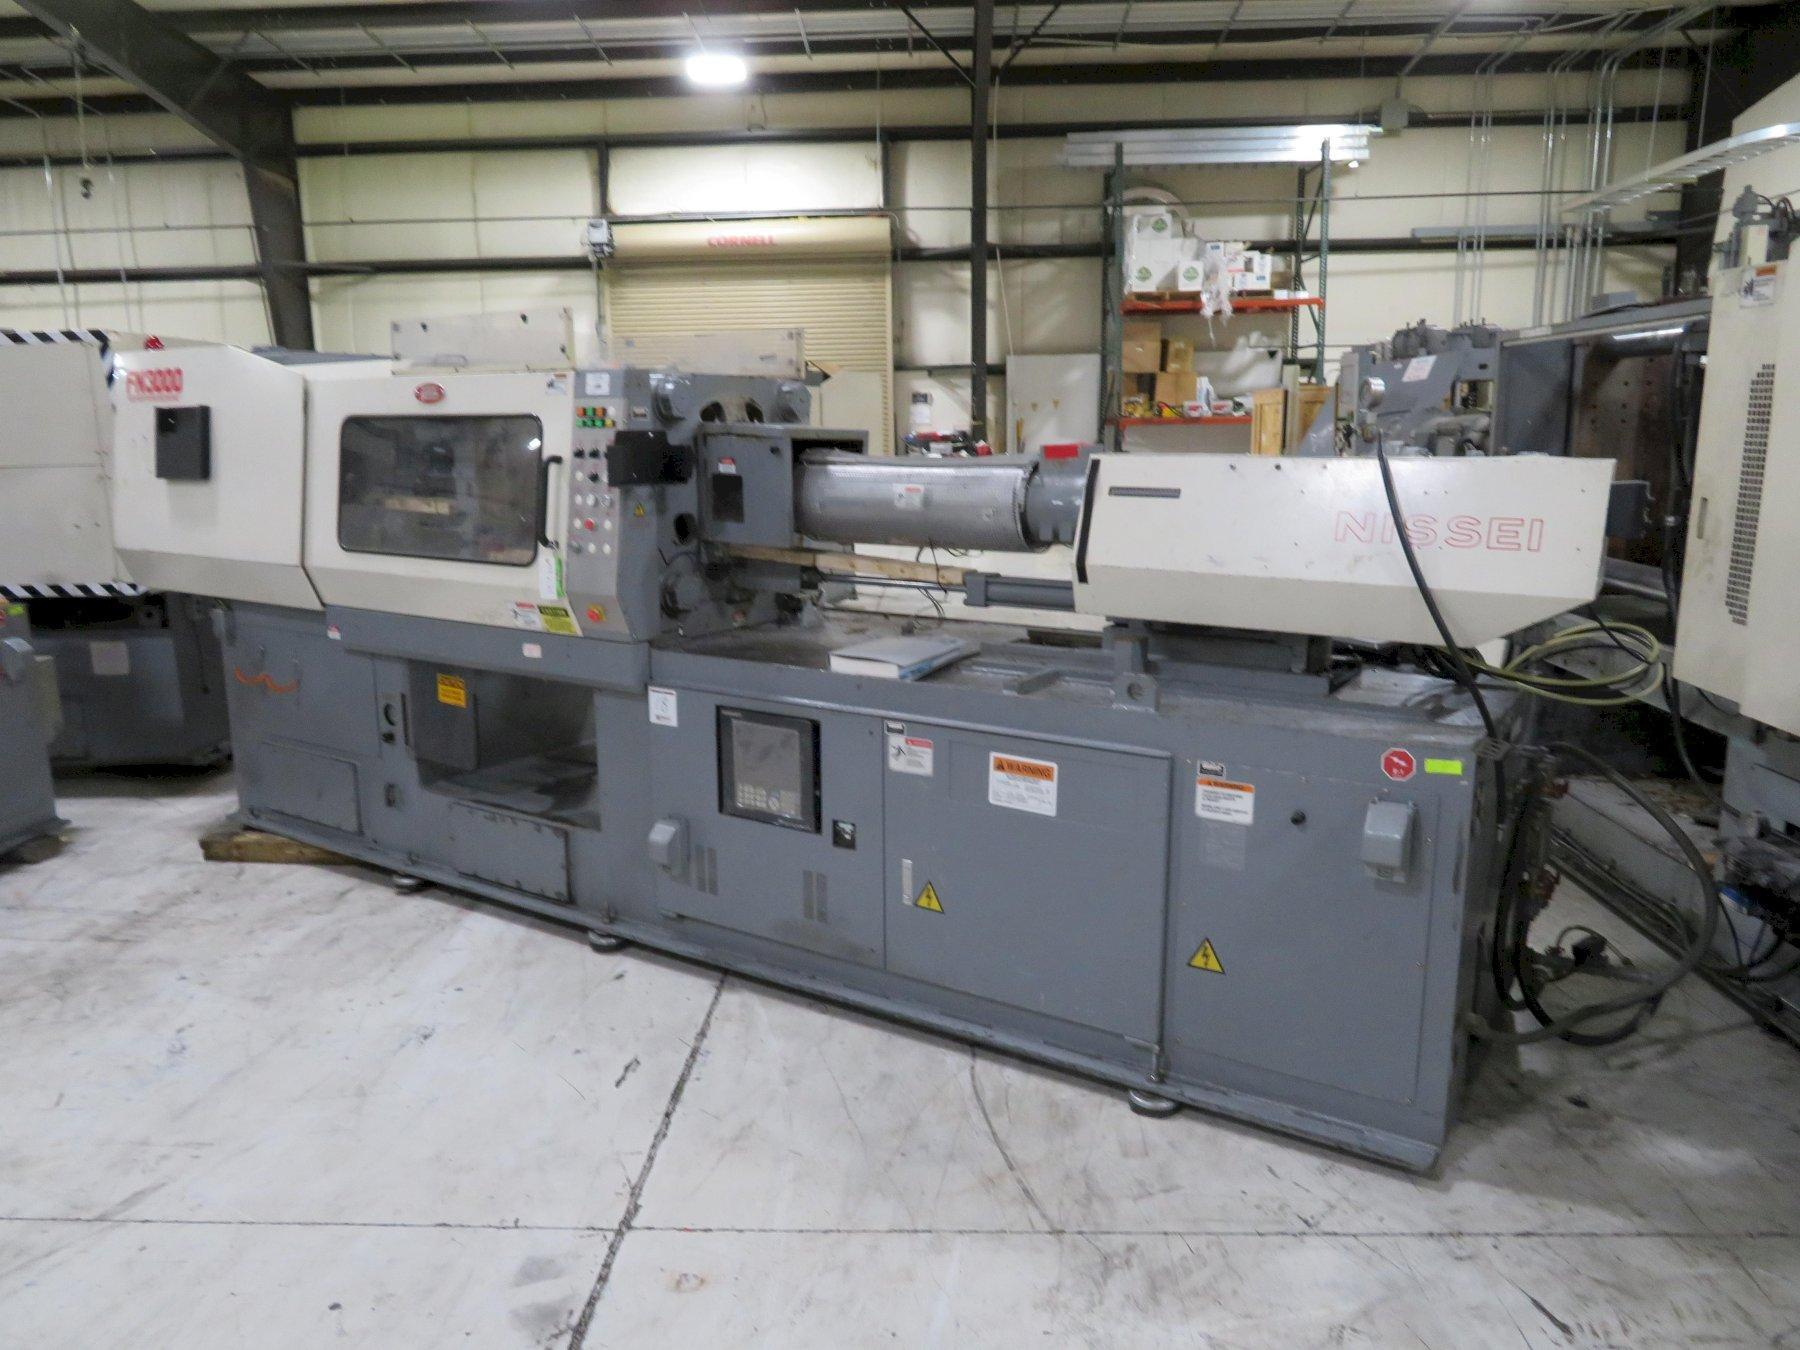 Nissei Used FN3000-25A Injection Molding Machine, 154 US ton, Yr. 2000, 10.5 oz. 460V